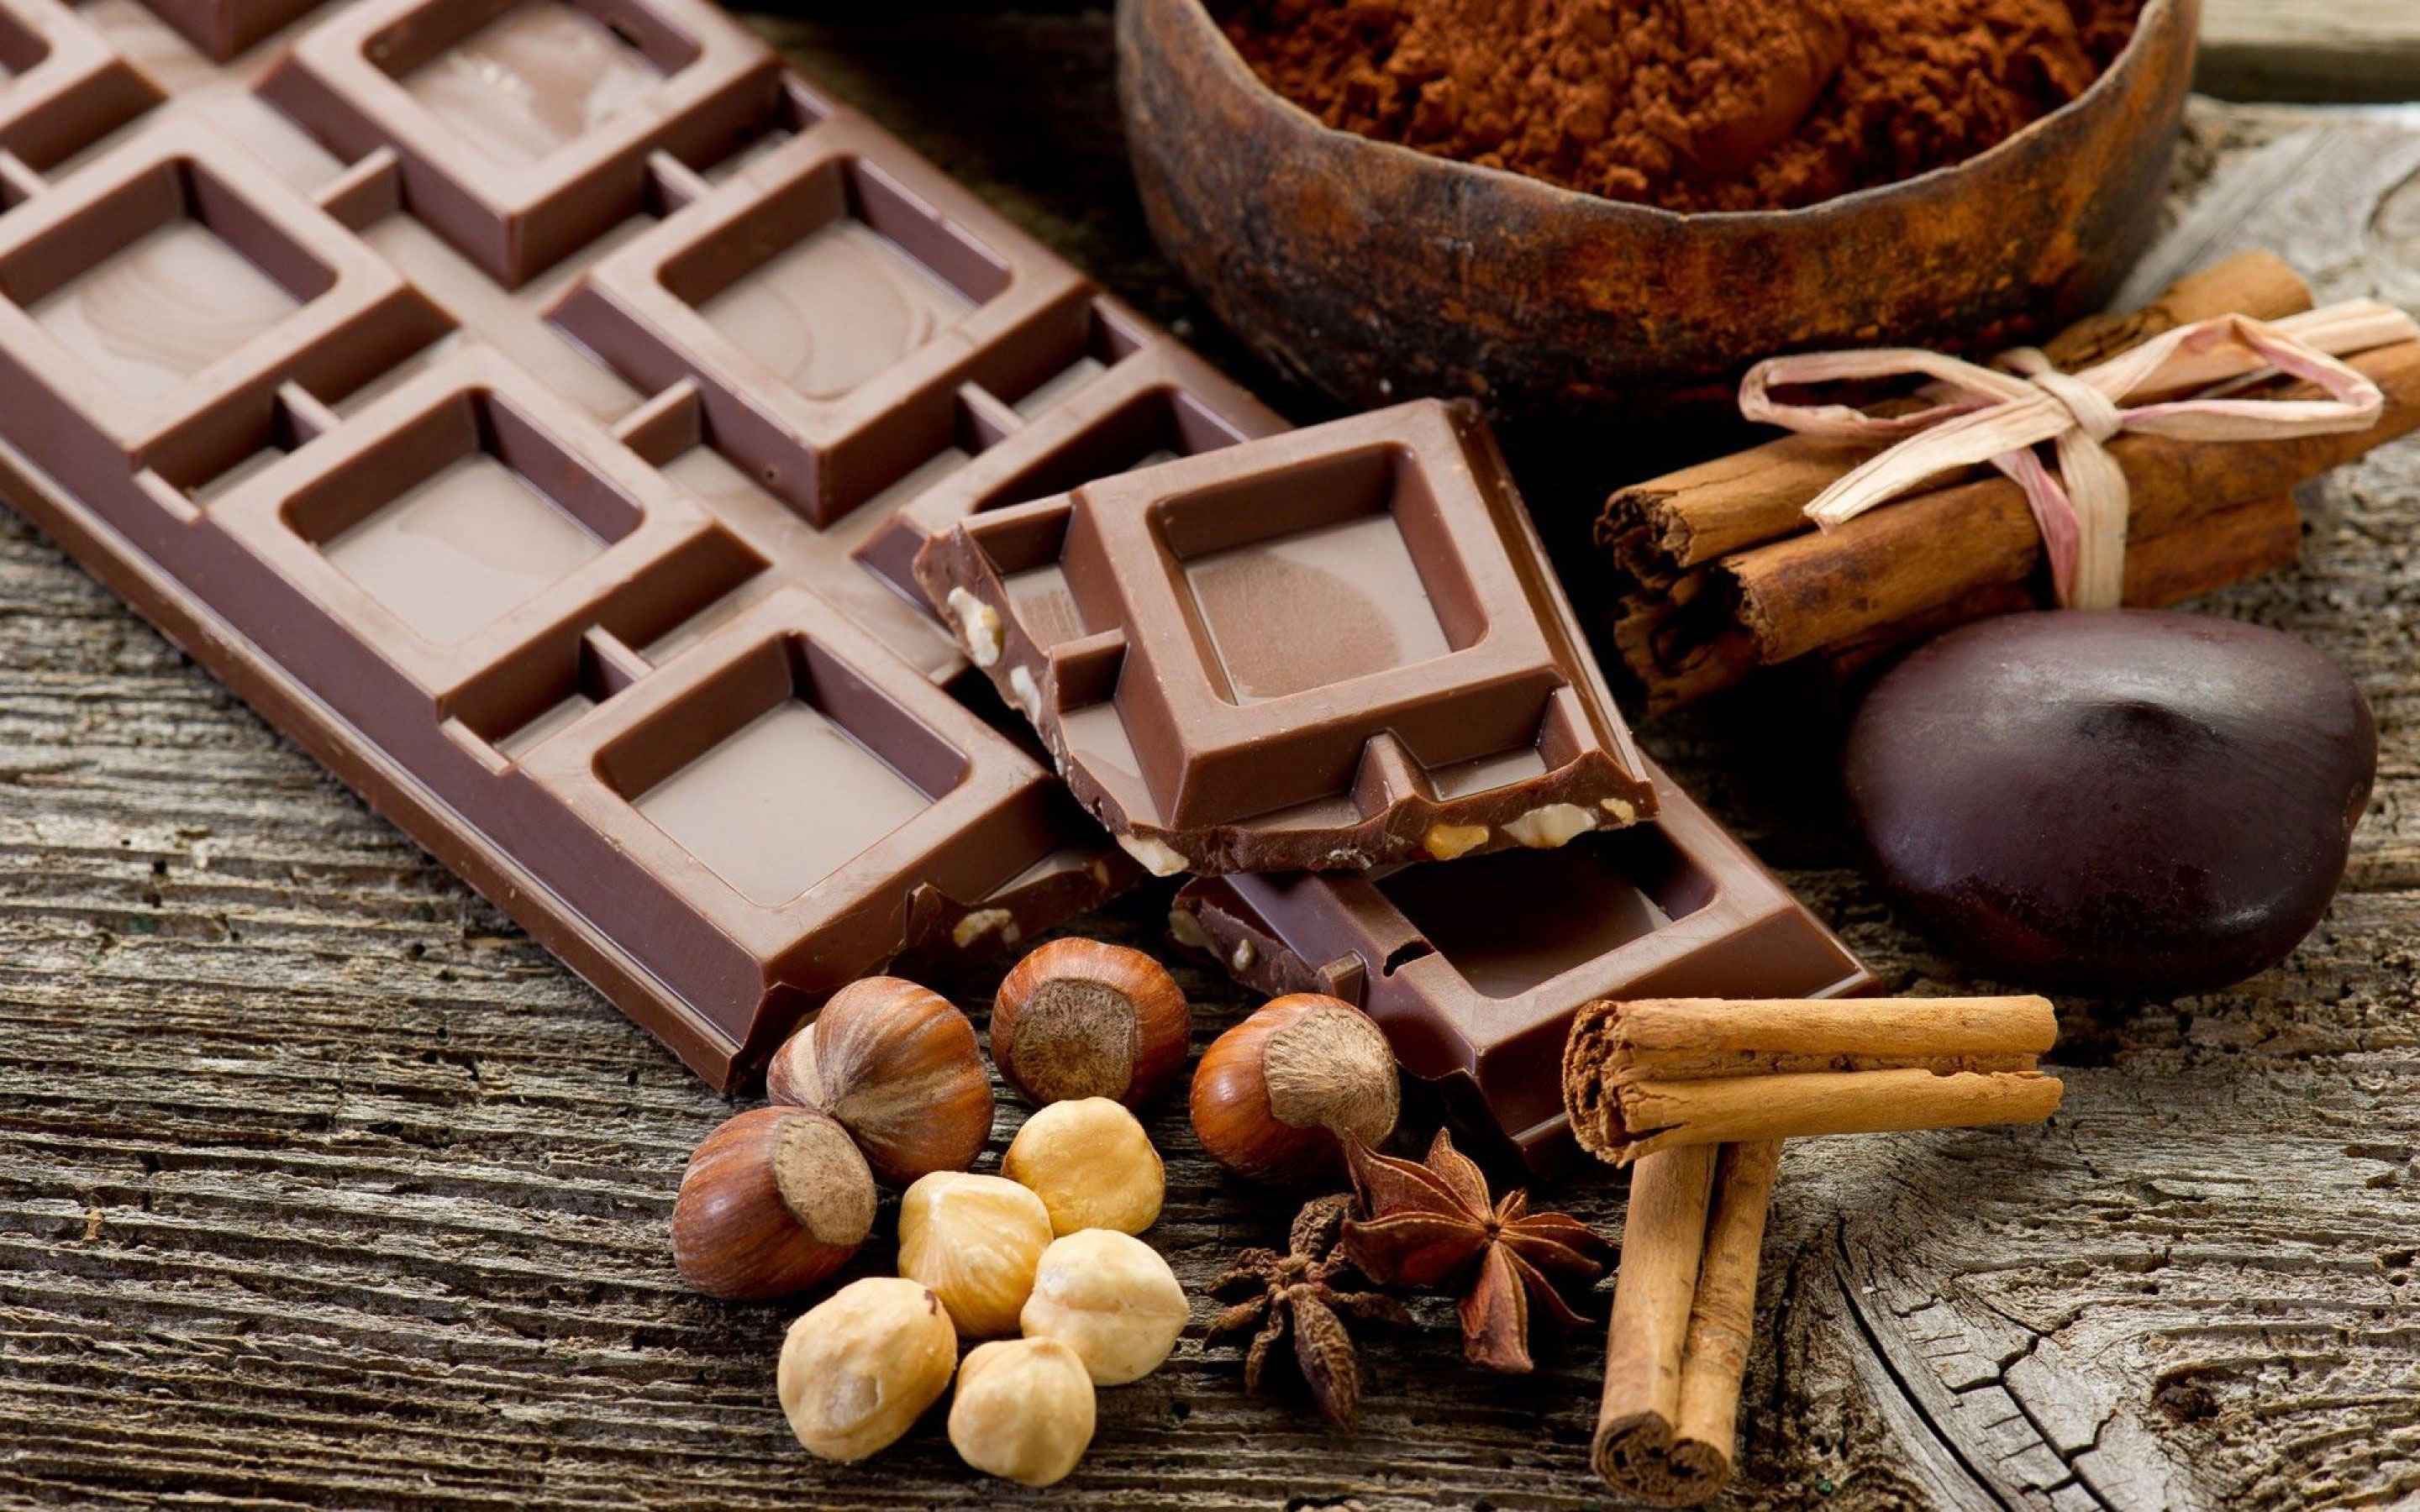 happy-chocolate-day-new-hd-wallpapers-free